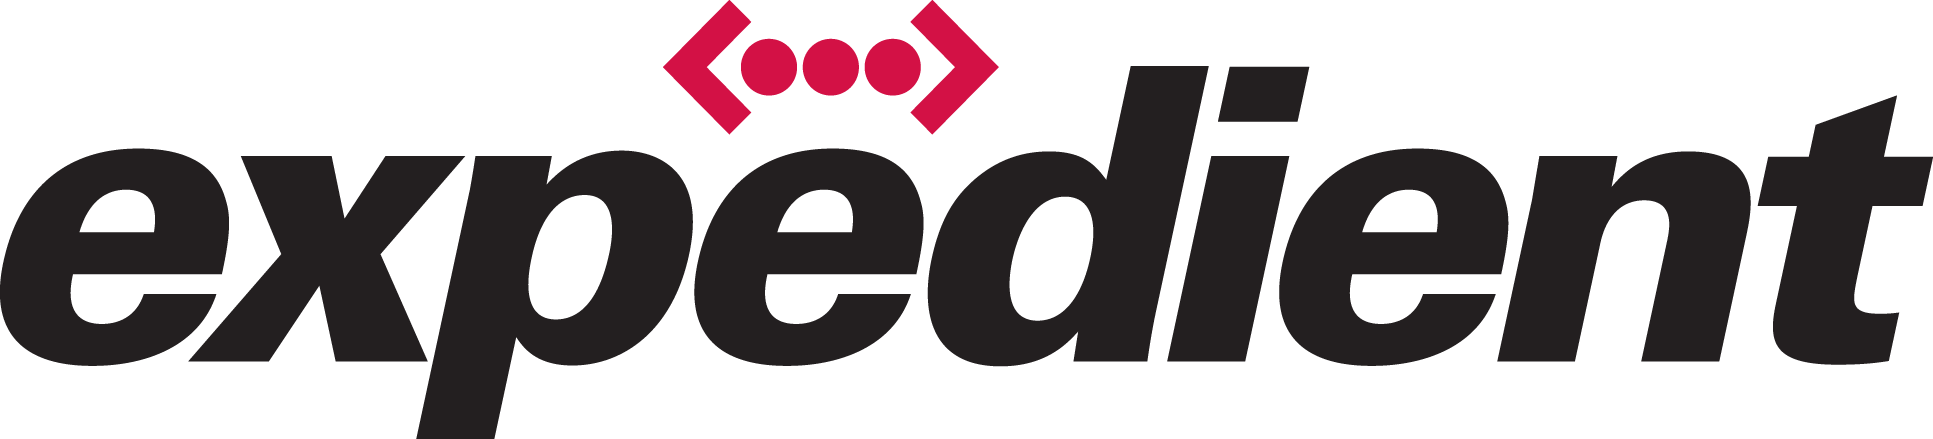 Expedient-logo.png